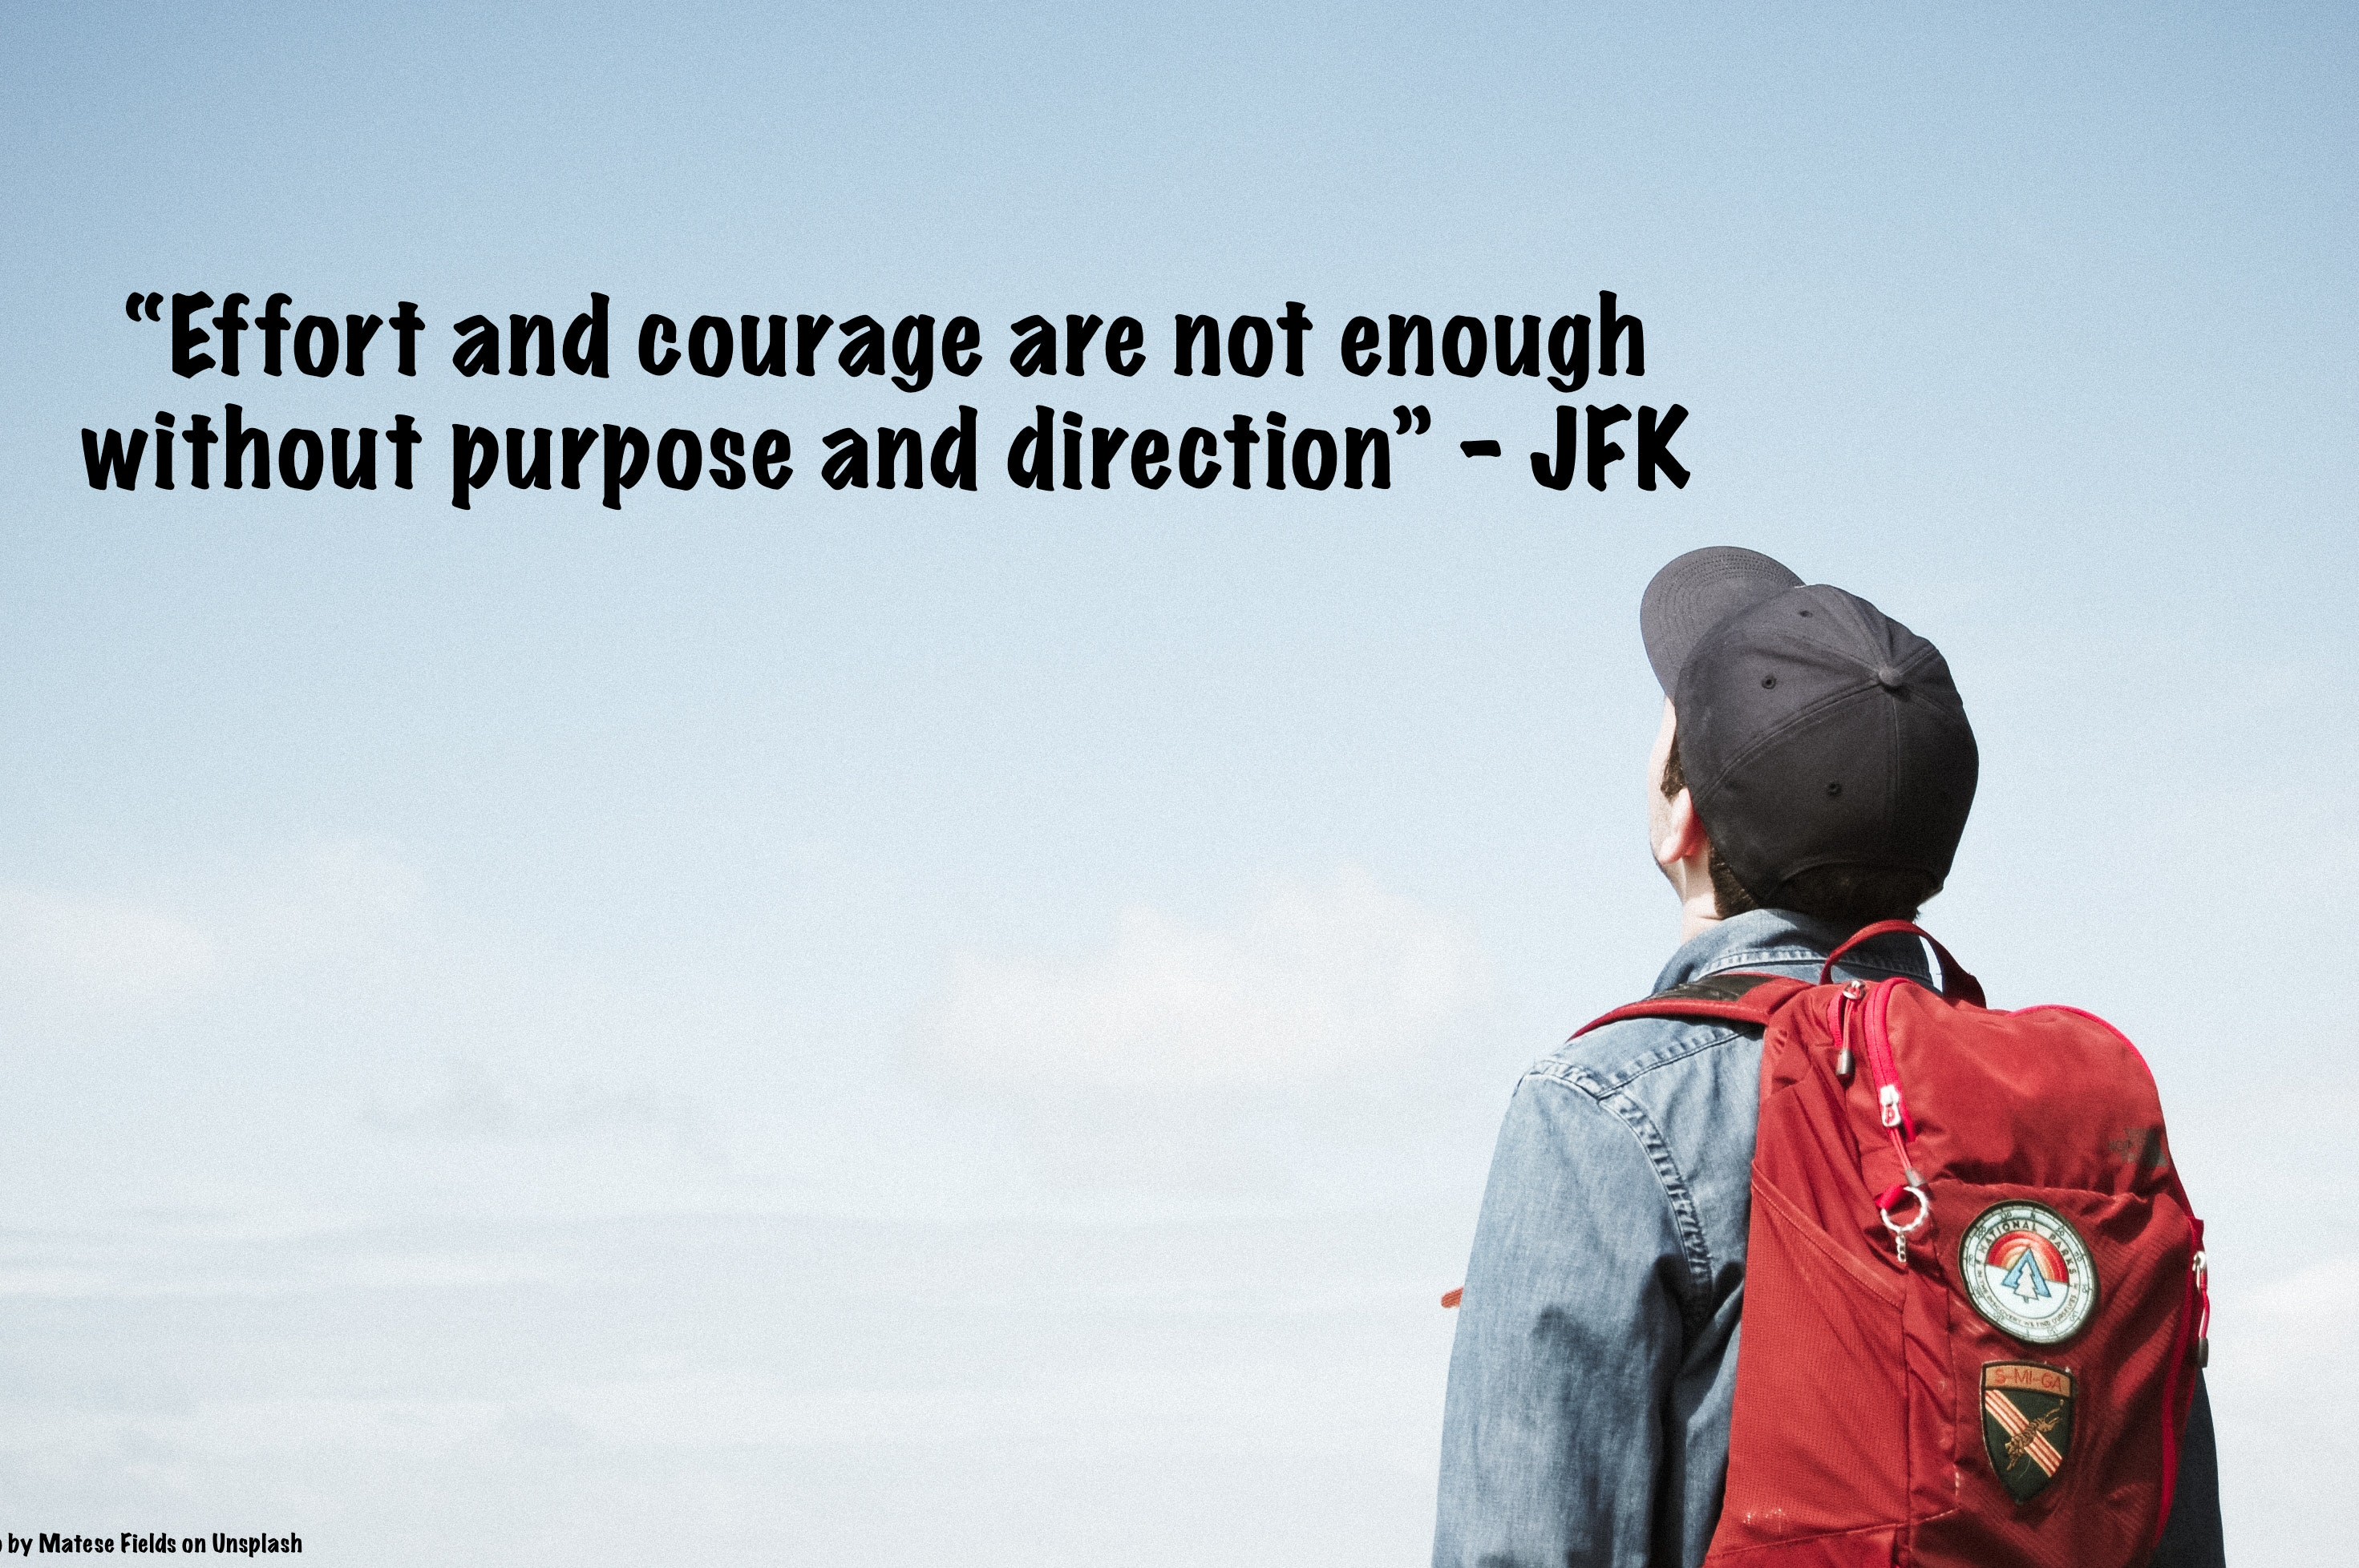 Executive Function Coaching - Effort and courage are not enough without purpose and direction